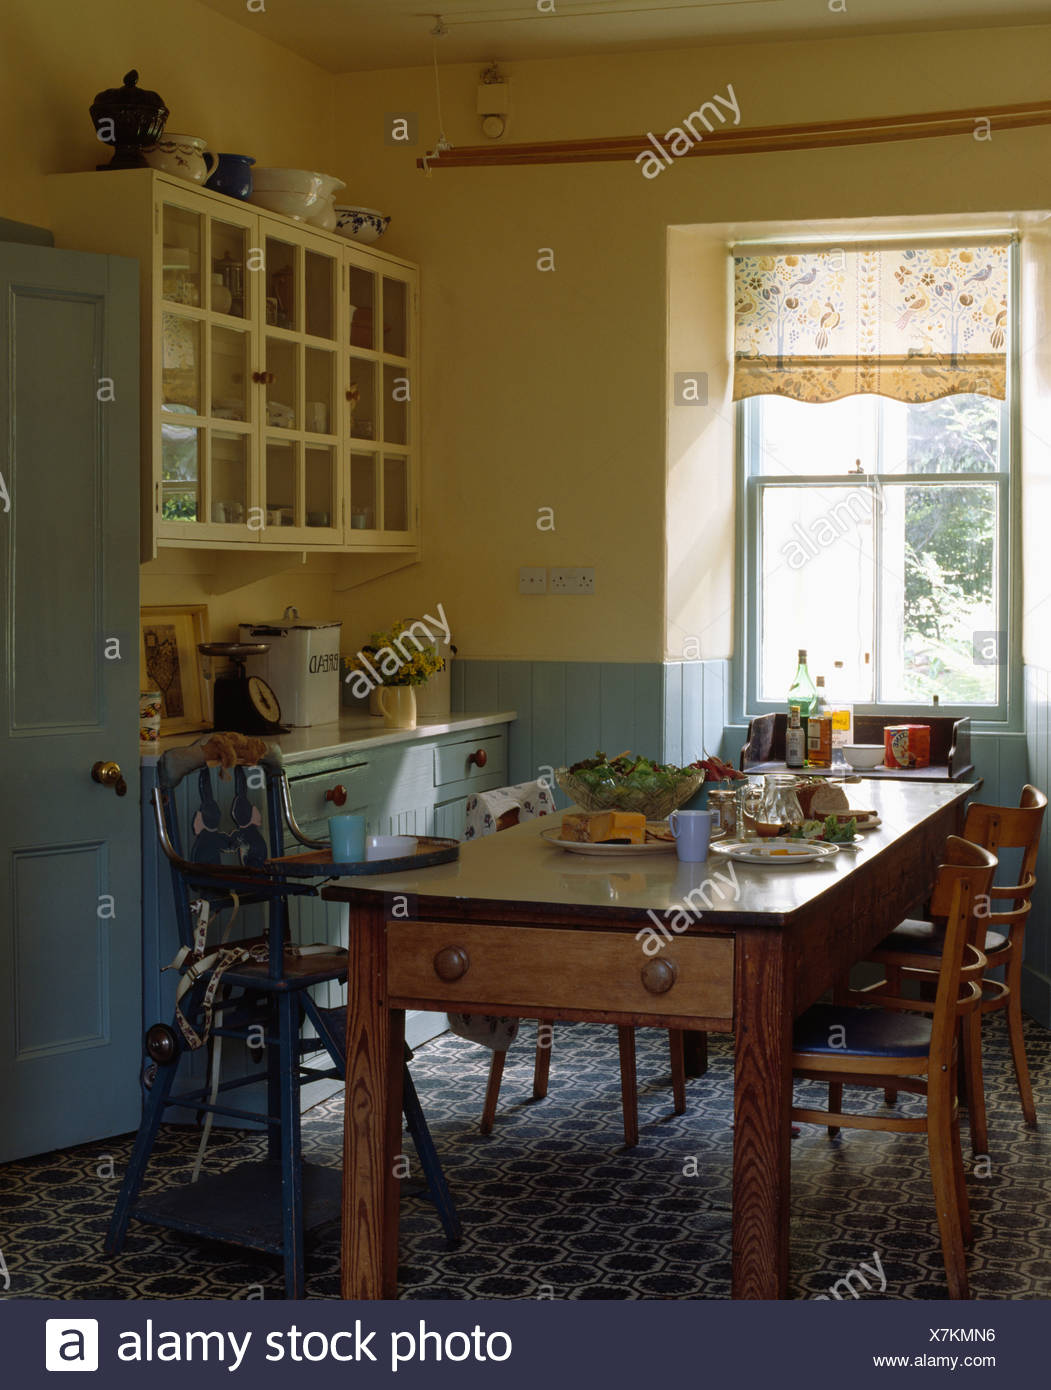 Old pine table and chairs in pale yellow kitchen with pastel blue ...